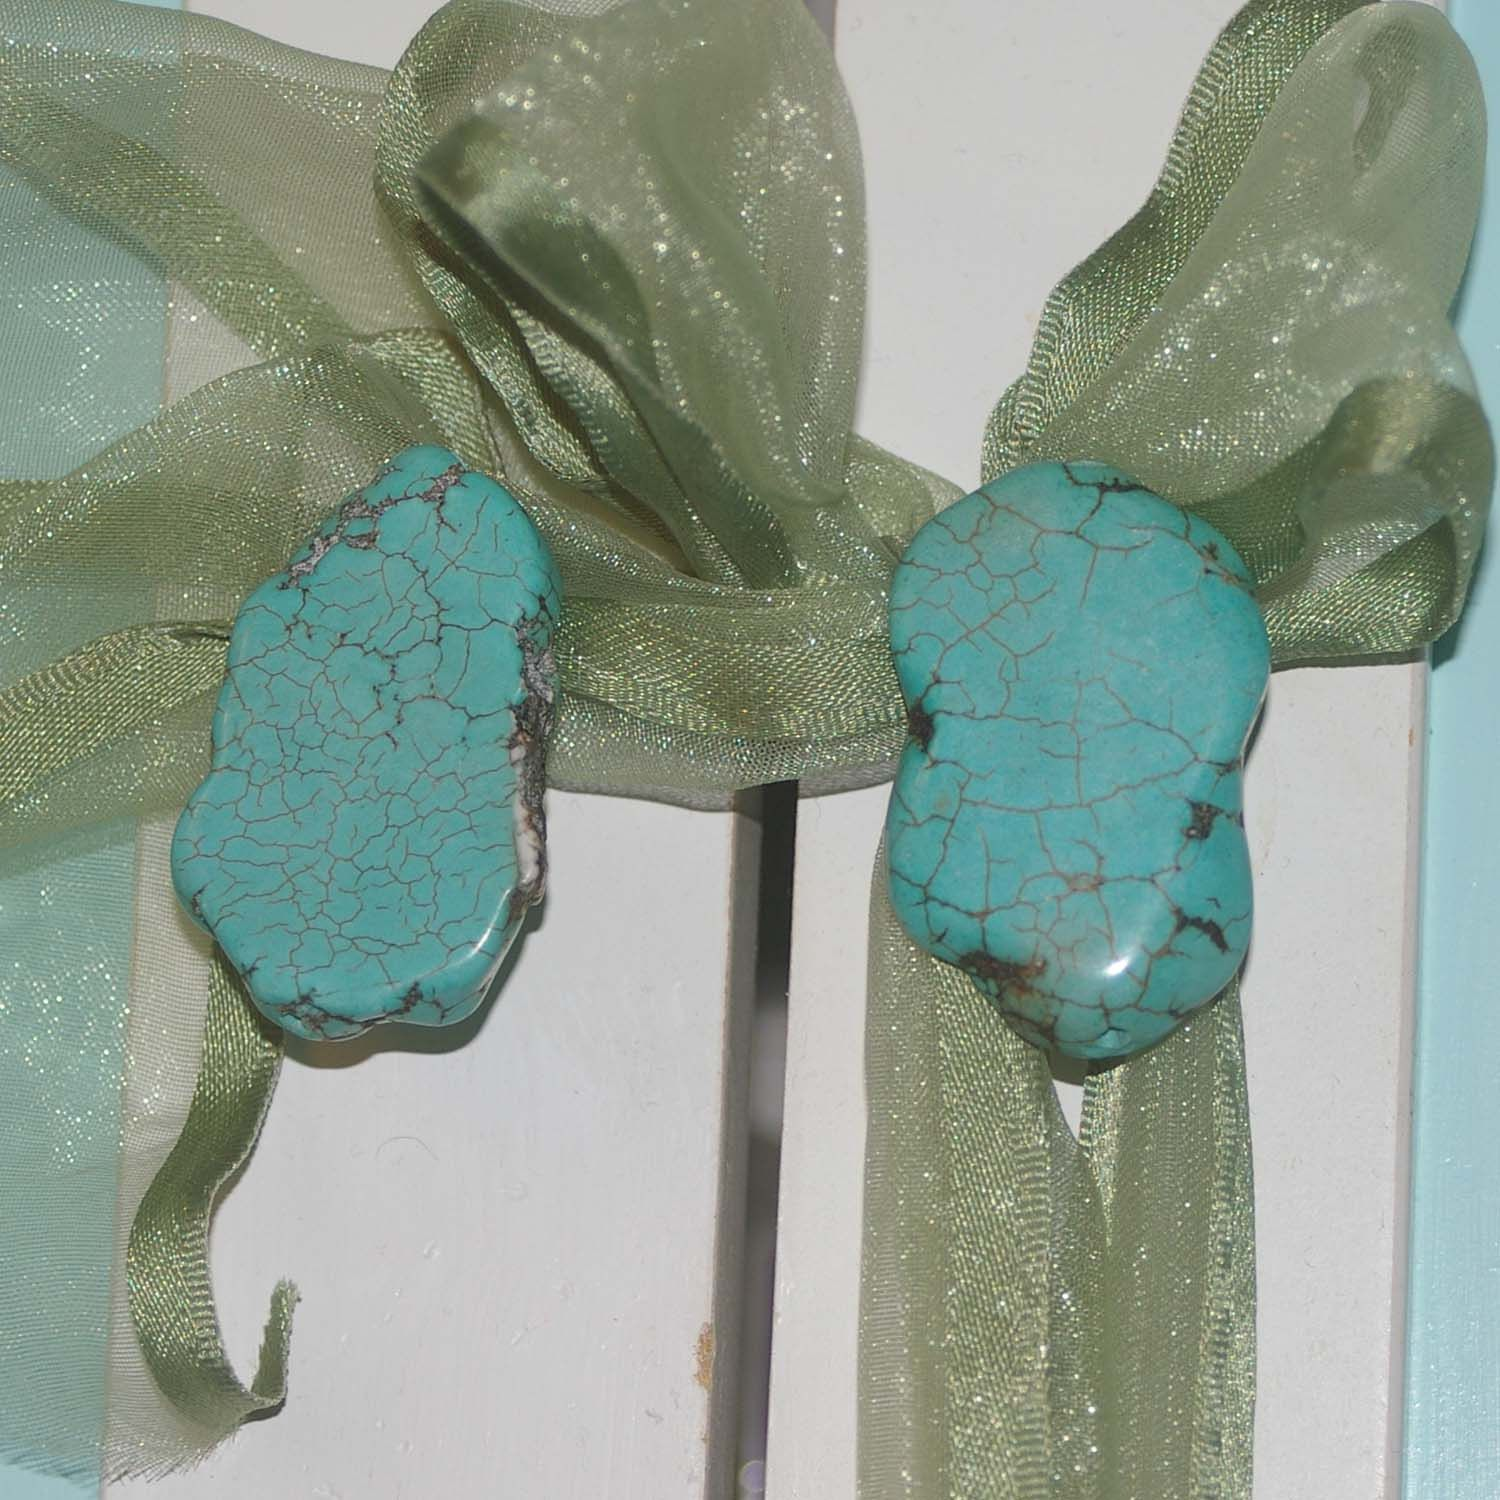 Stone Cabinet Knobs - Factory Made Turquoise -Set of 2. $12.00, via Etsy.